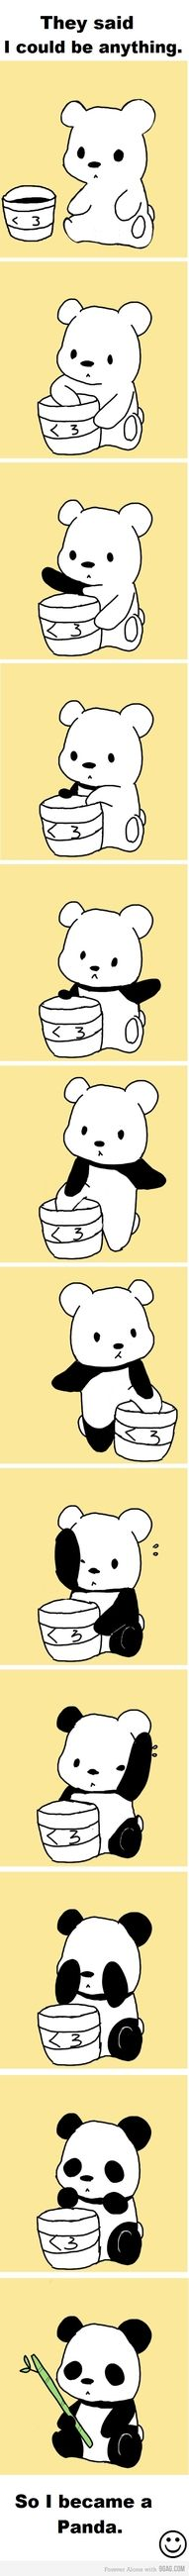 Awee so cute, they said I could be anything so I became a panda